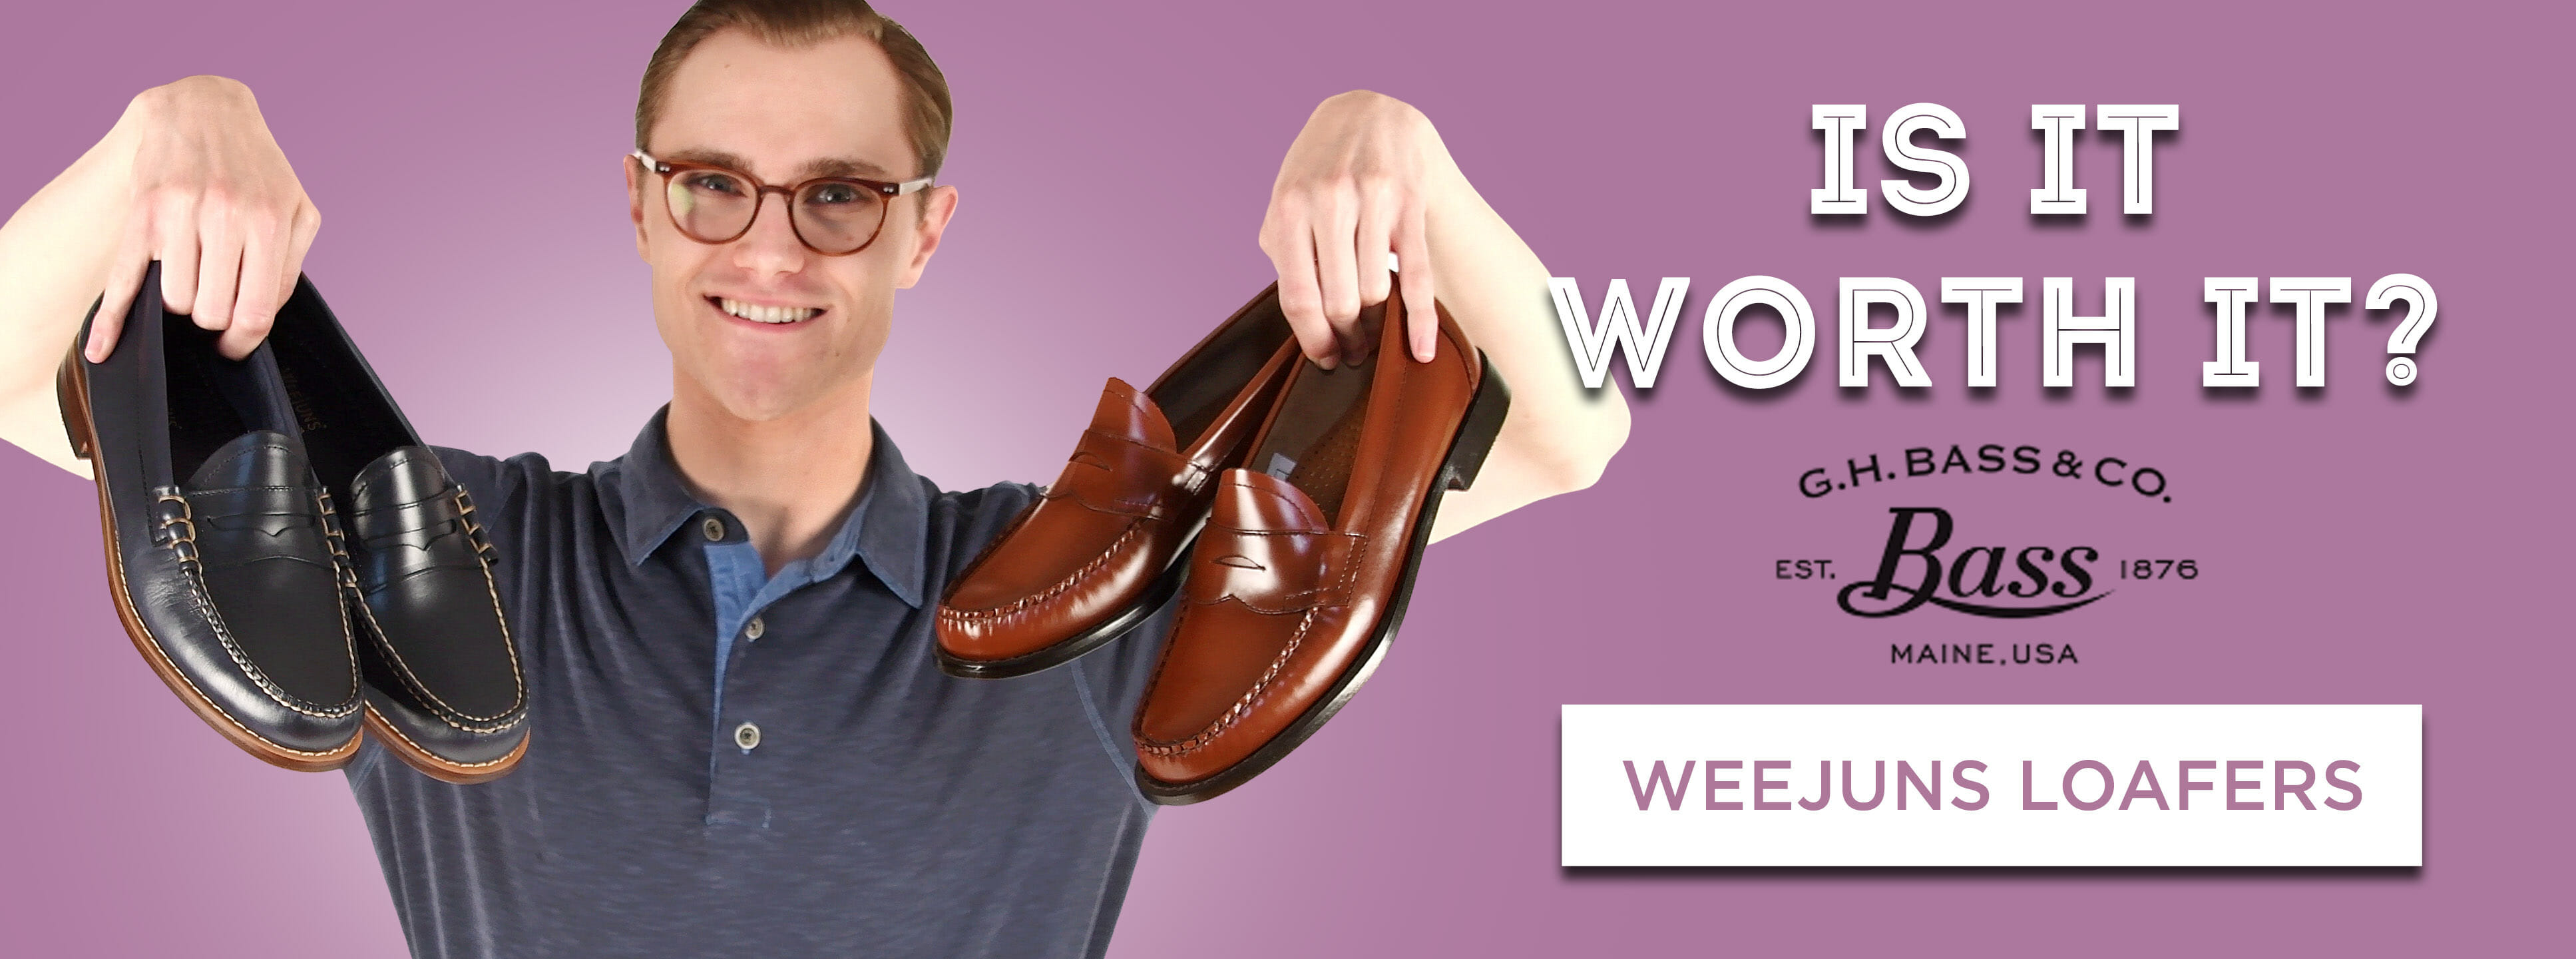 """G.H. Bass """"Weejuns"""" Loafers: Is It"""